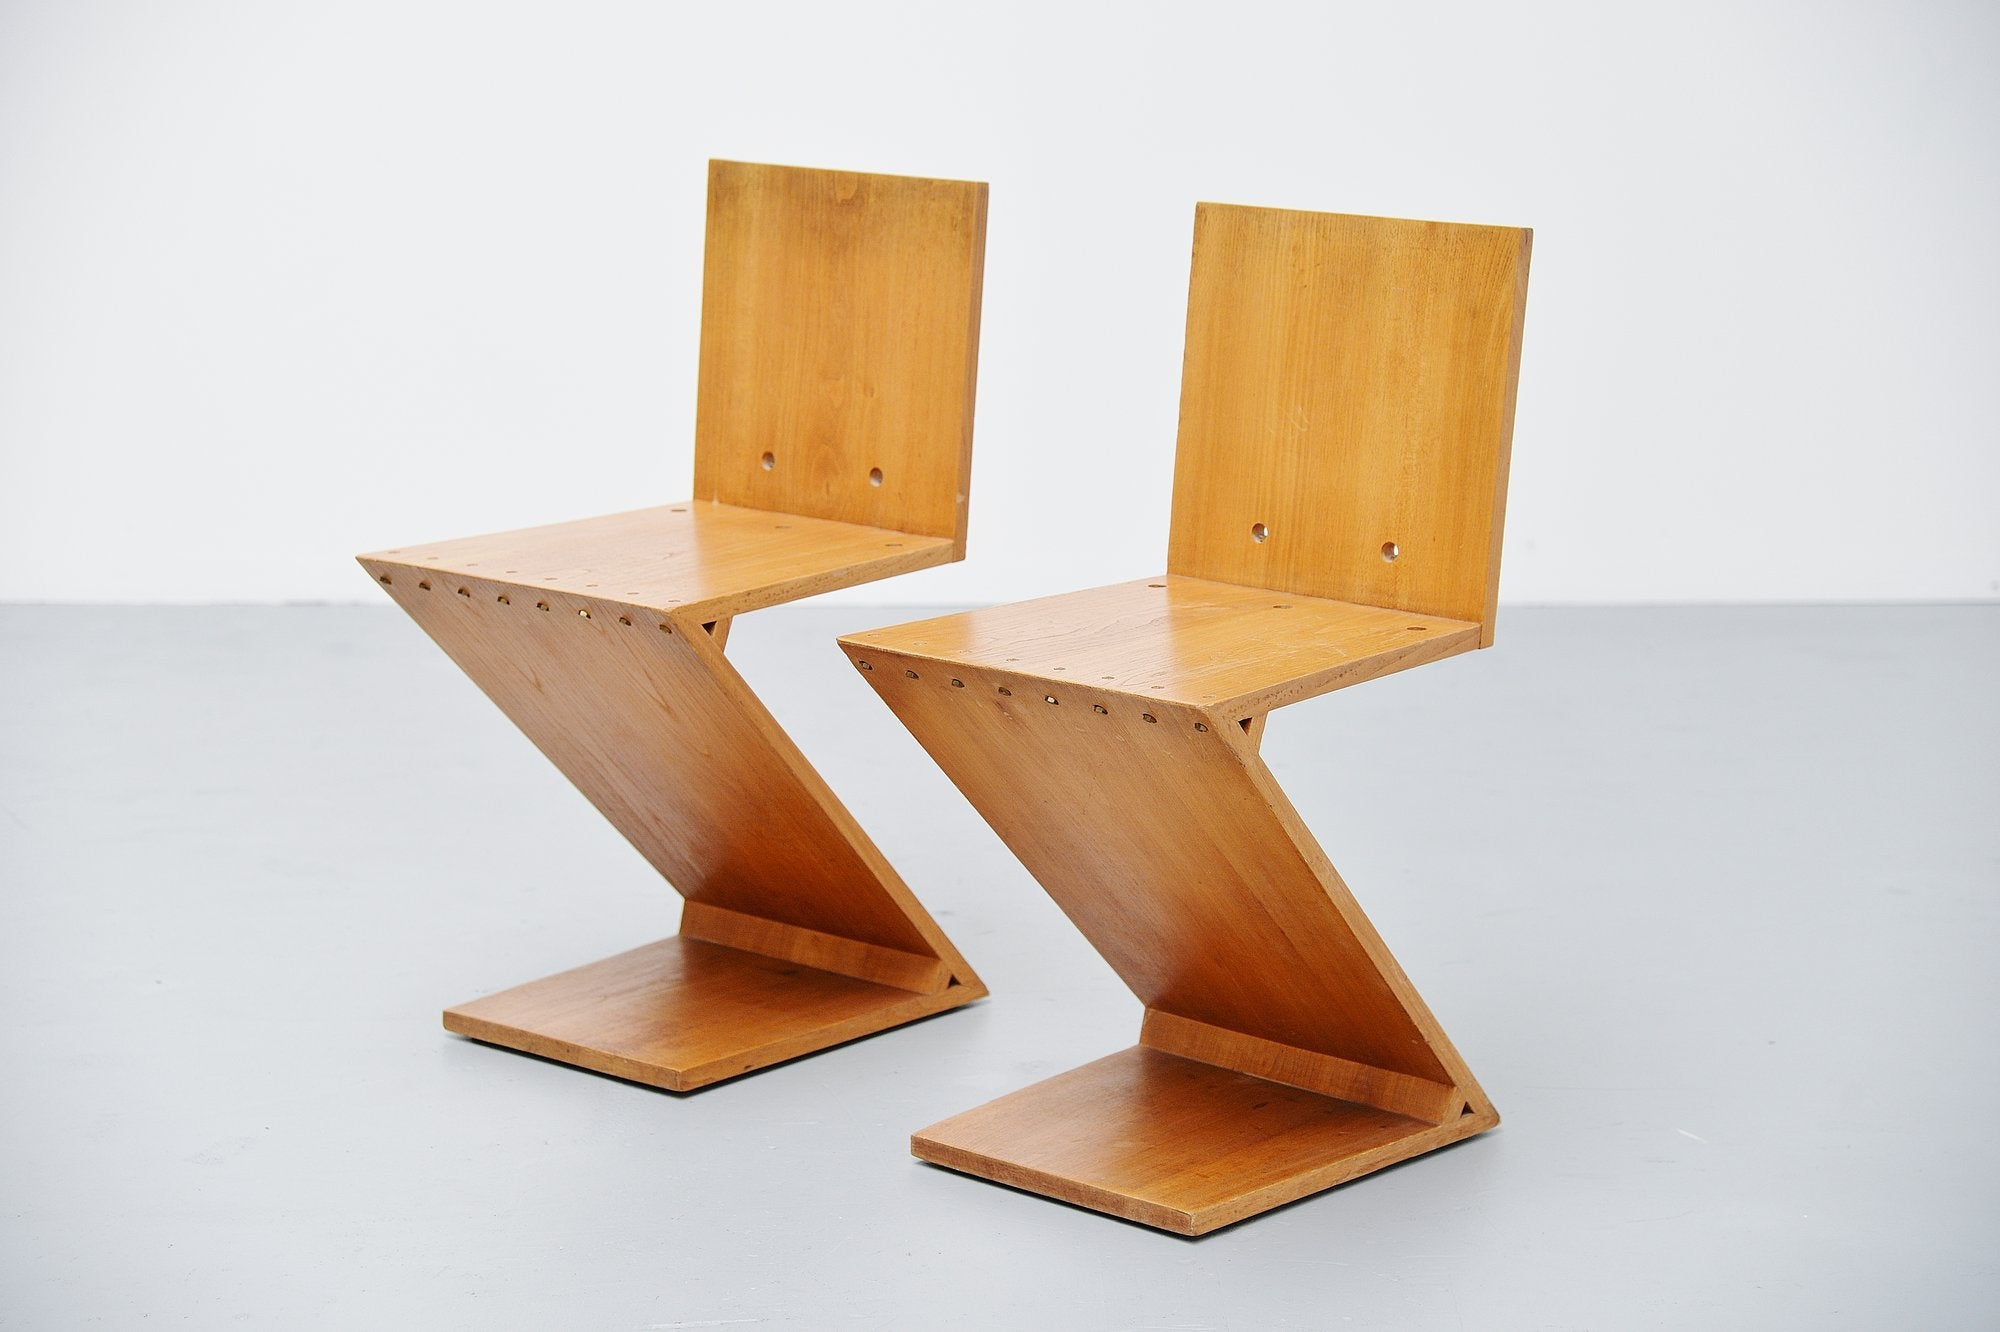 Superbe Gerrit Rietveld Zig Zag Chair Pair G.A.v.d. Groenekan, 1965 For Sale At  1stdibs